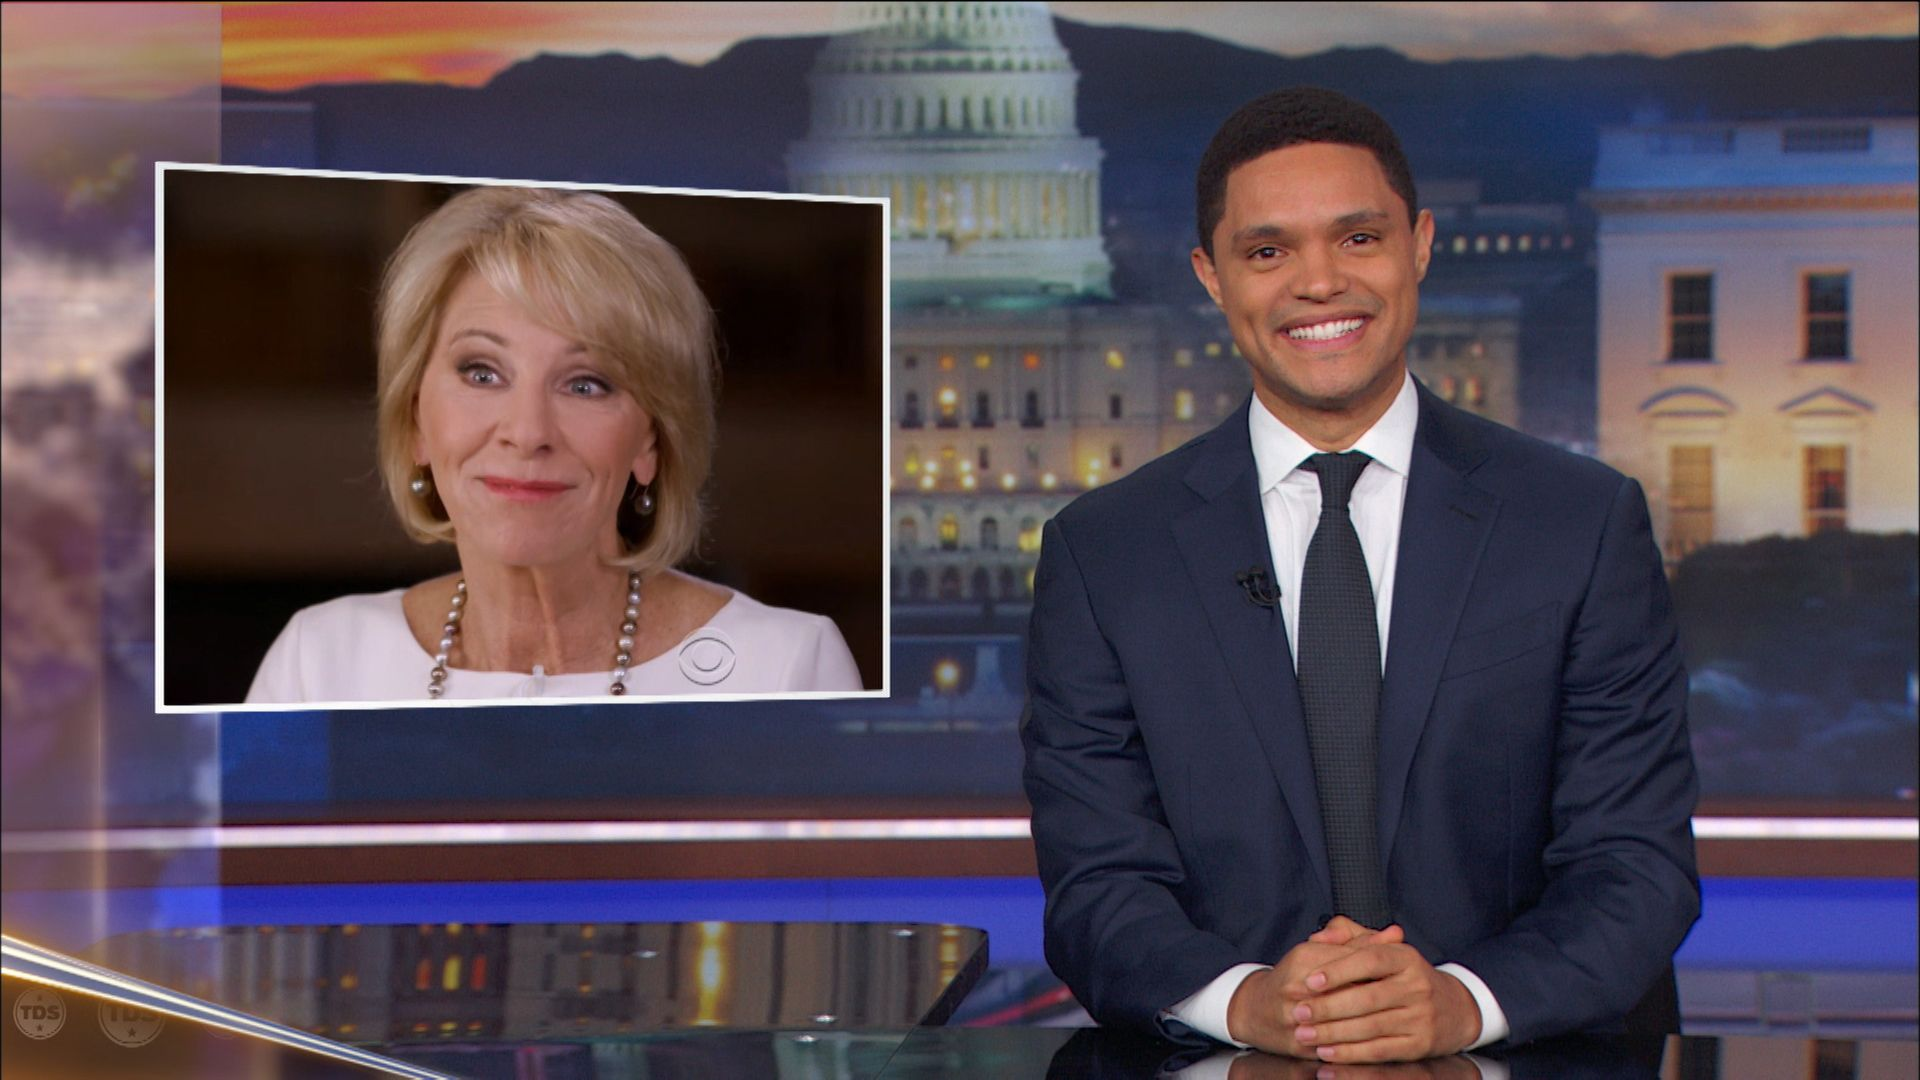 betsy devos has a lot of learning to do - the daily show with trevor